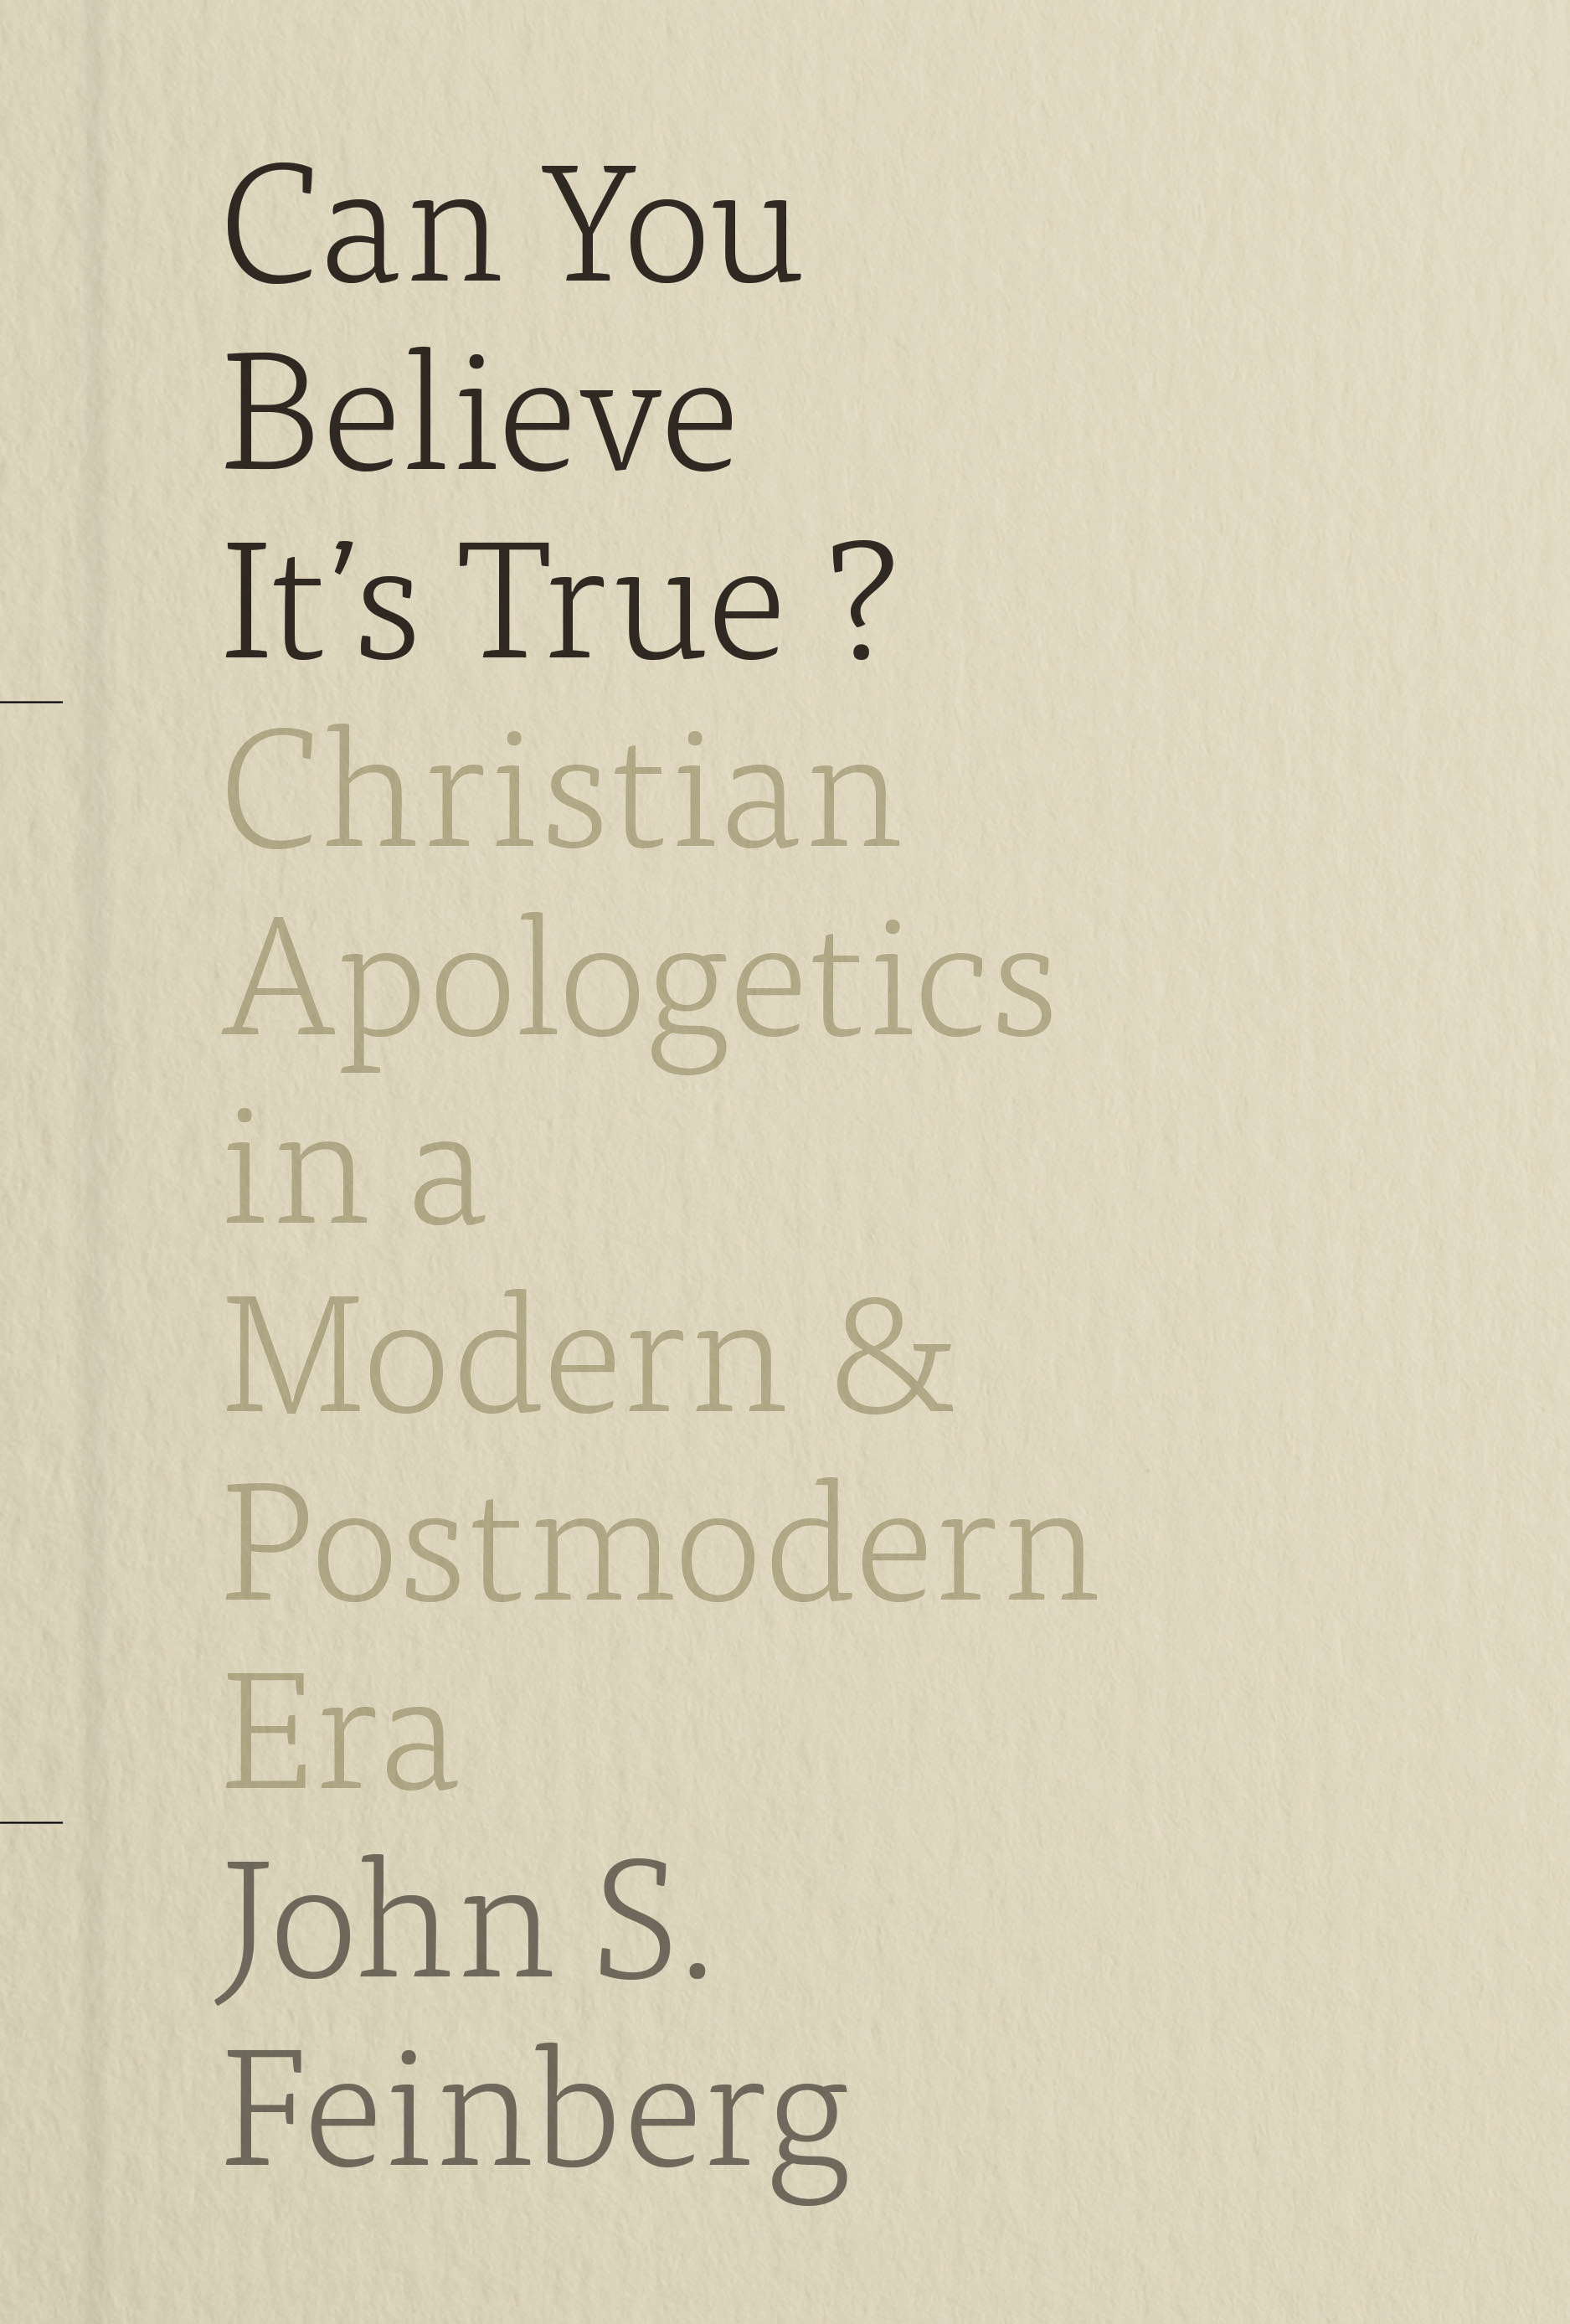 Can You Believe It's True? Christian Apologetics in a Modern and Postmodern Era